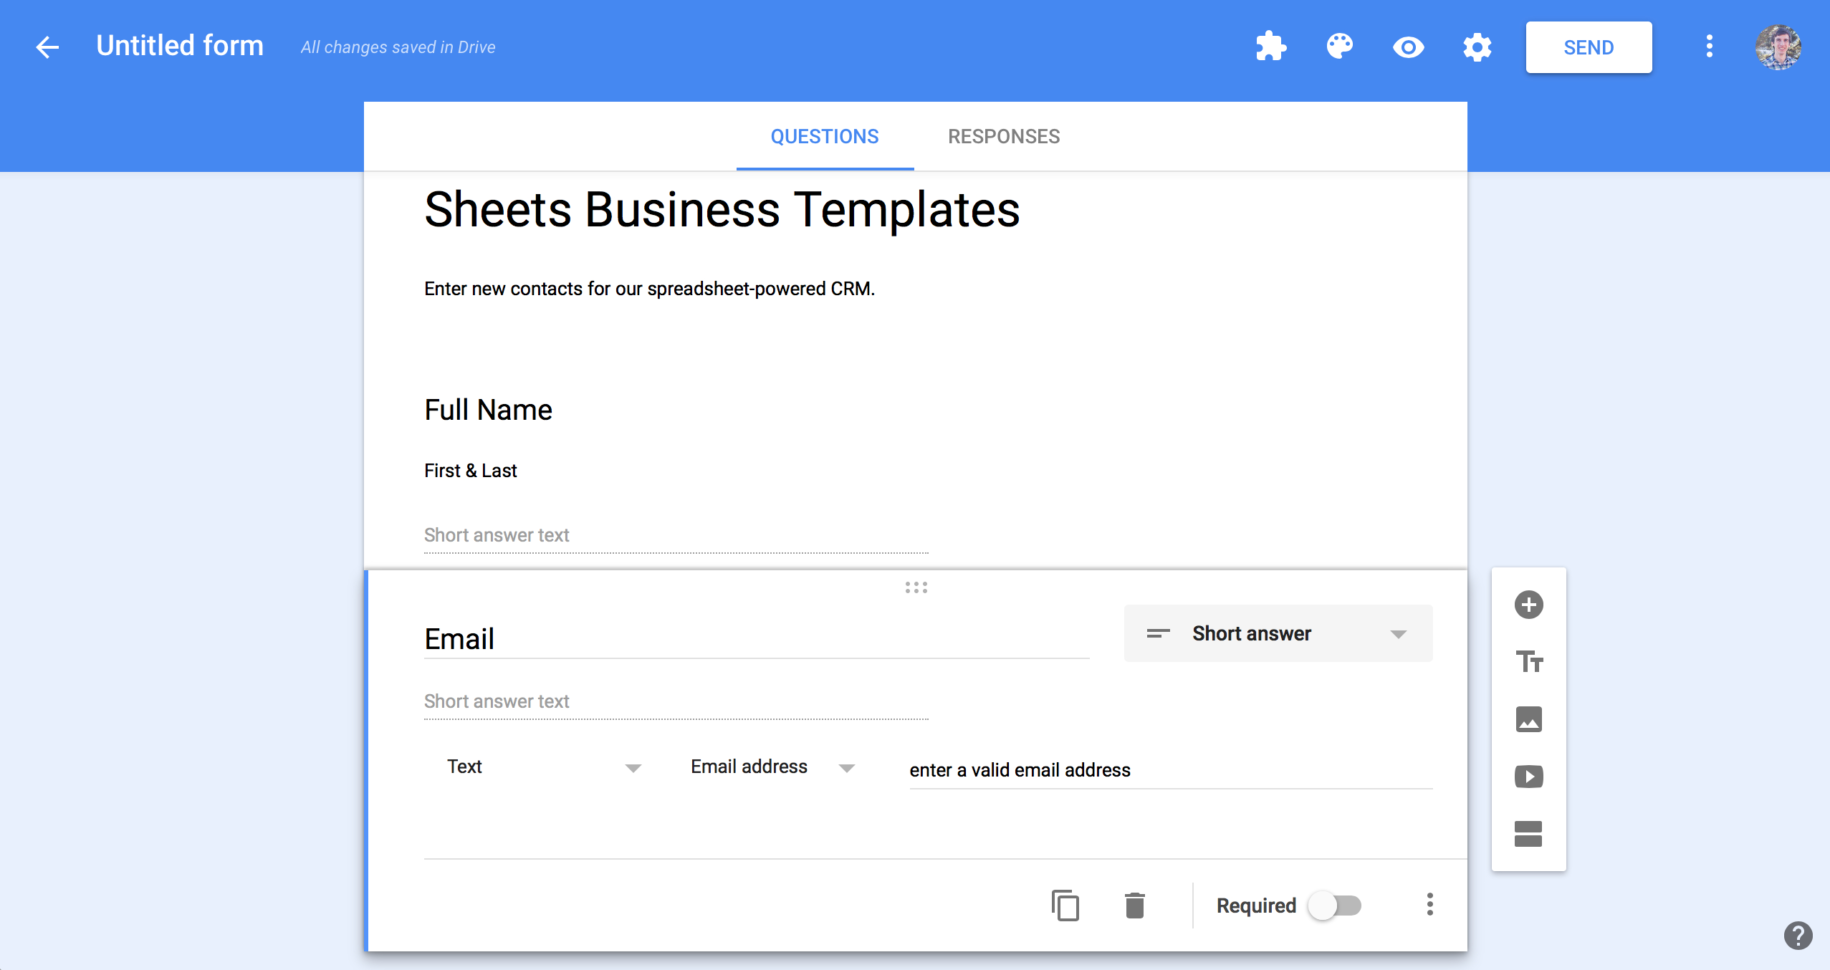 Time Tracking Spreadsheet Google With Regard To Spreadsheet Crm: How To Create A Customizable Crm With Google Sheets